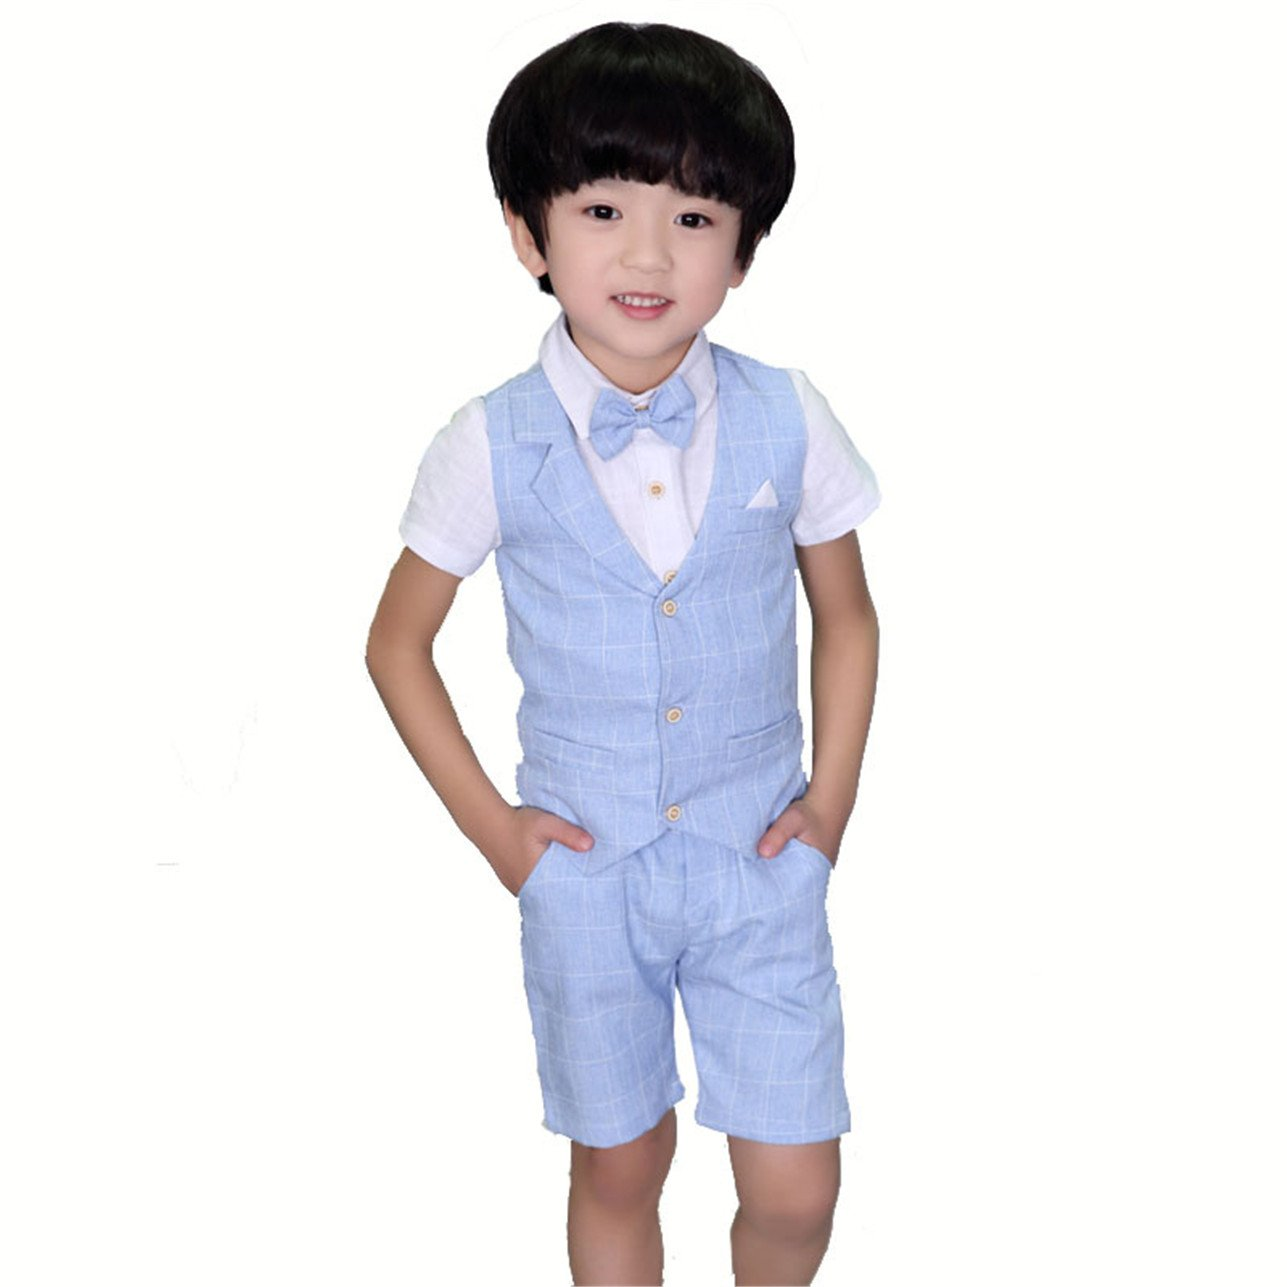 HZMY Boy's Leisure Summer Suit 4 Pieces Shirt,Vest Shorts (2T, Blue) by HZMY